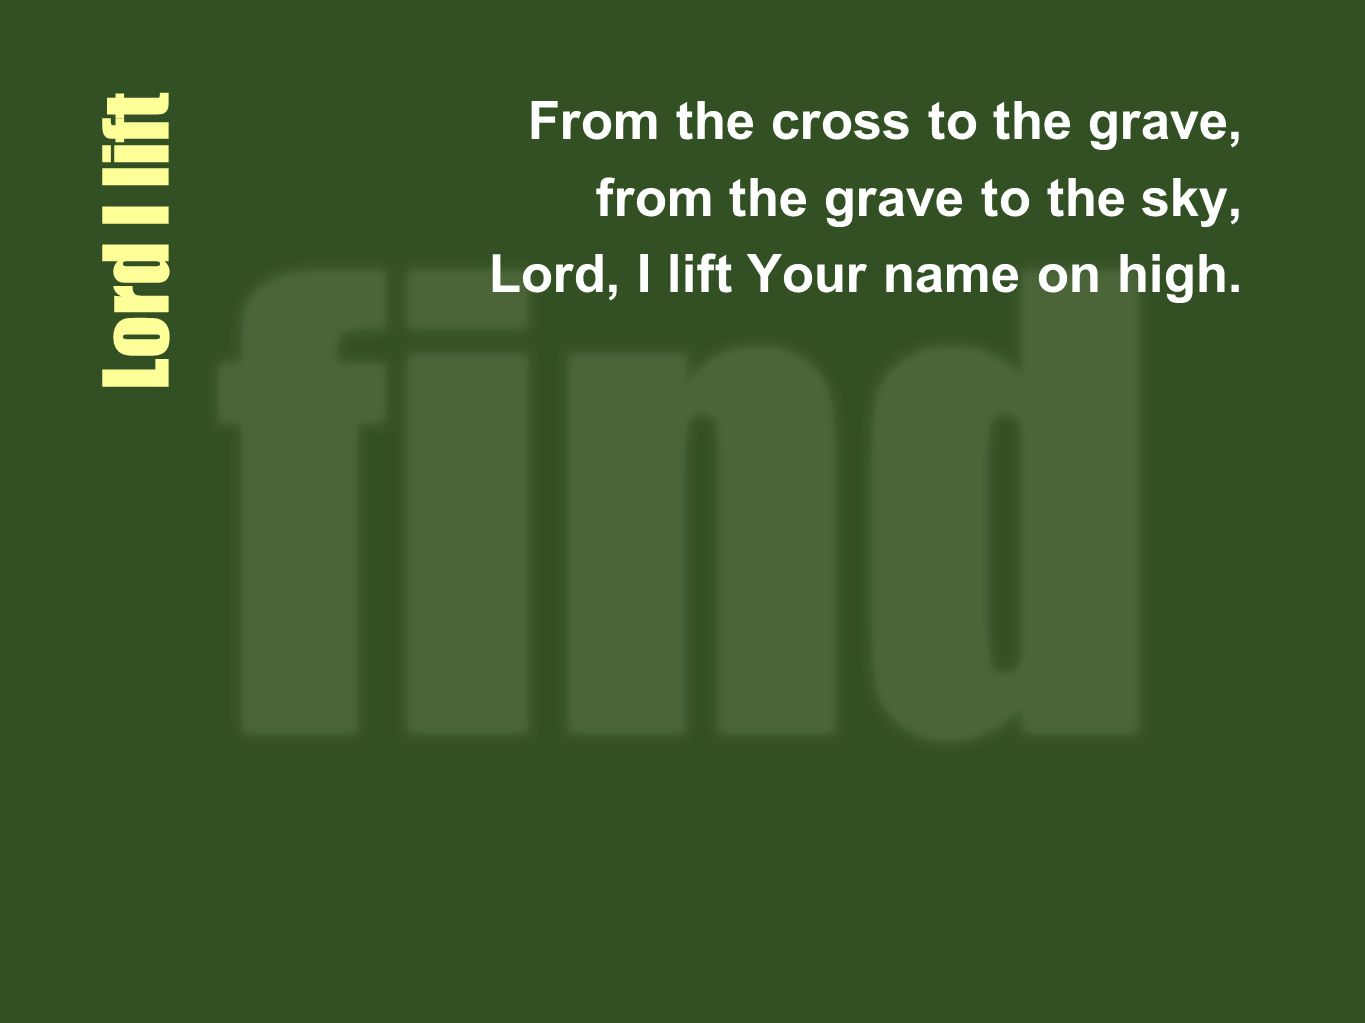 Lord I lift From the cross to the grave, from the grave to the sky,